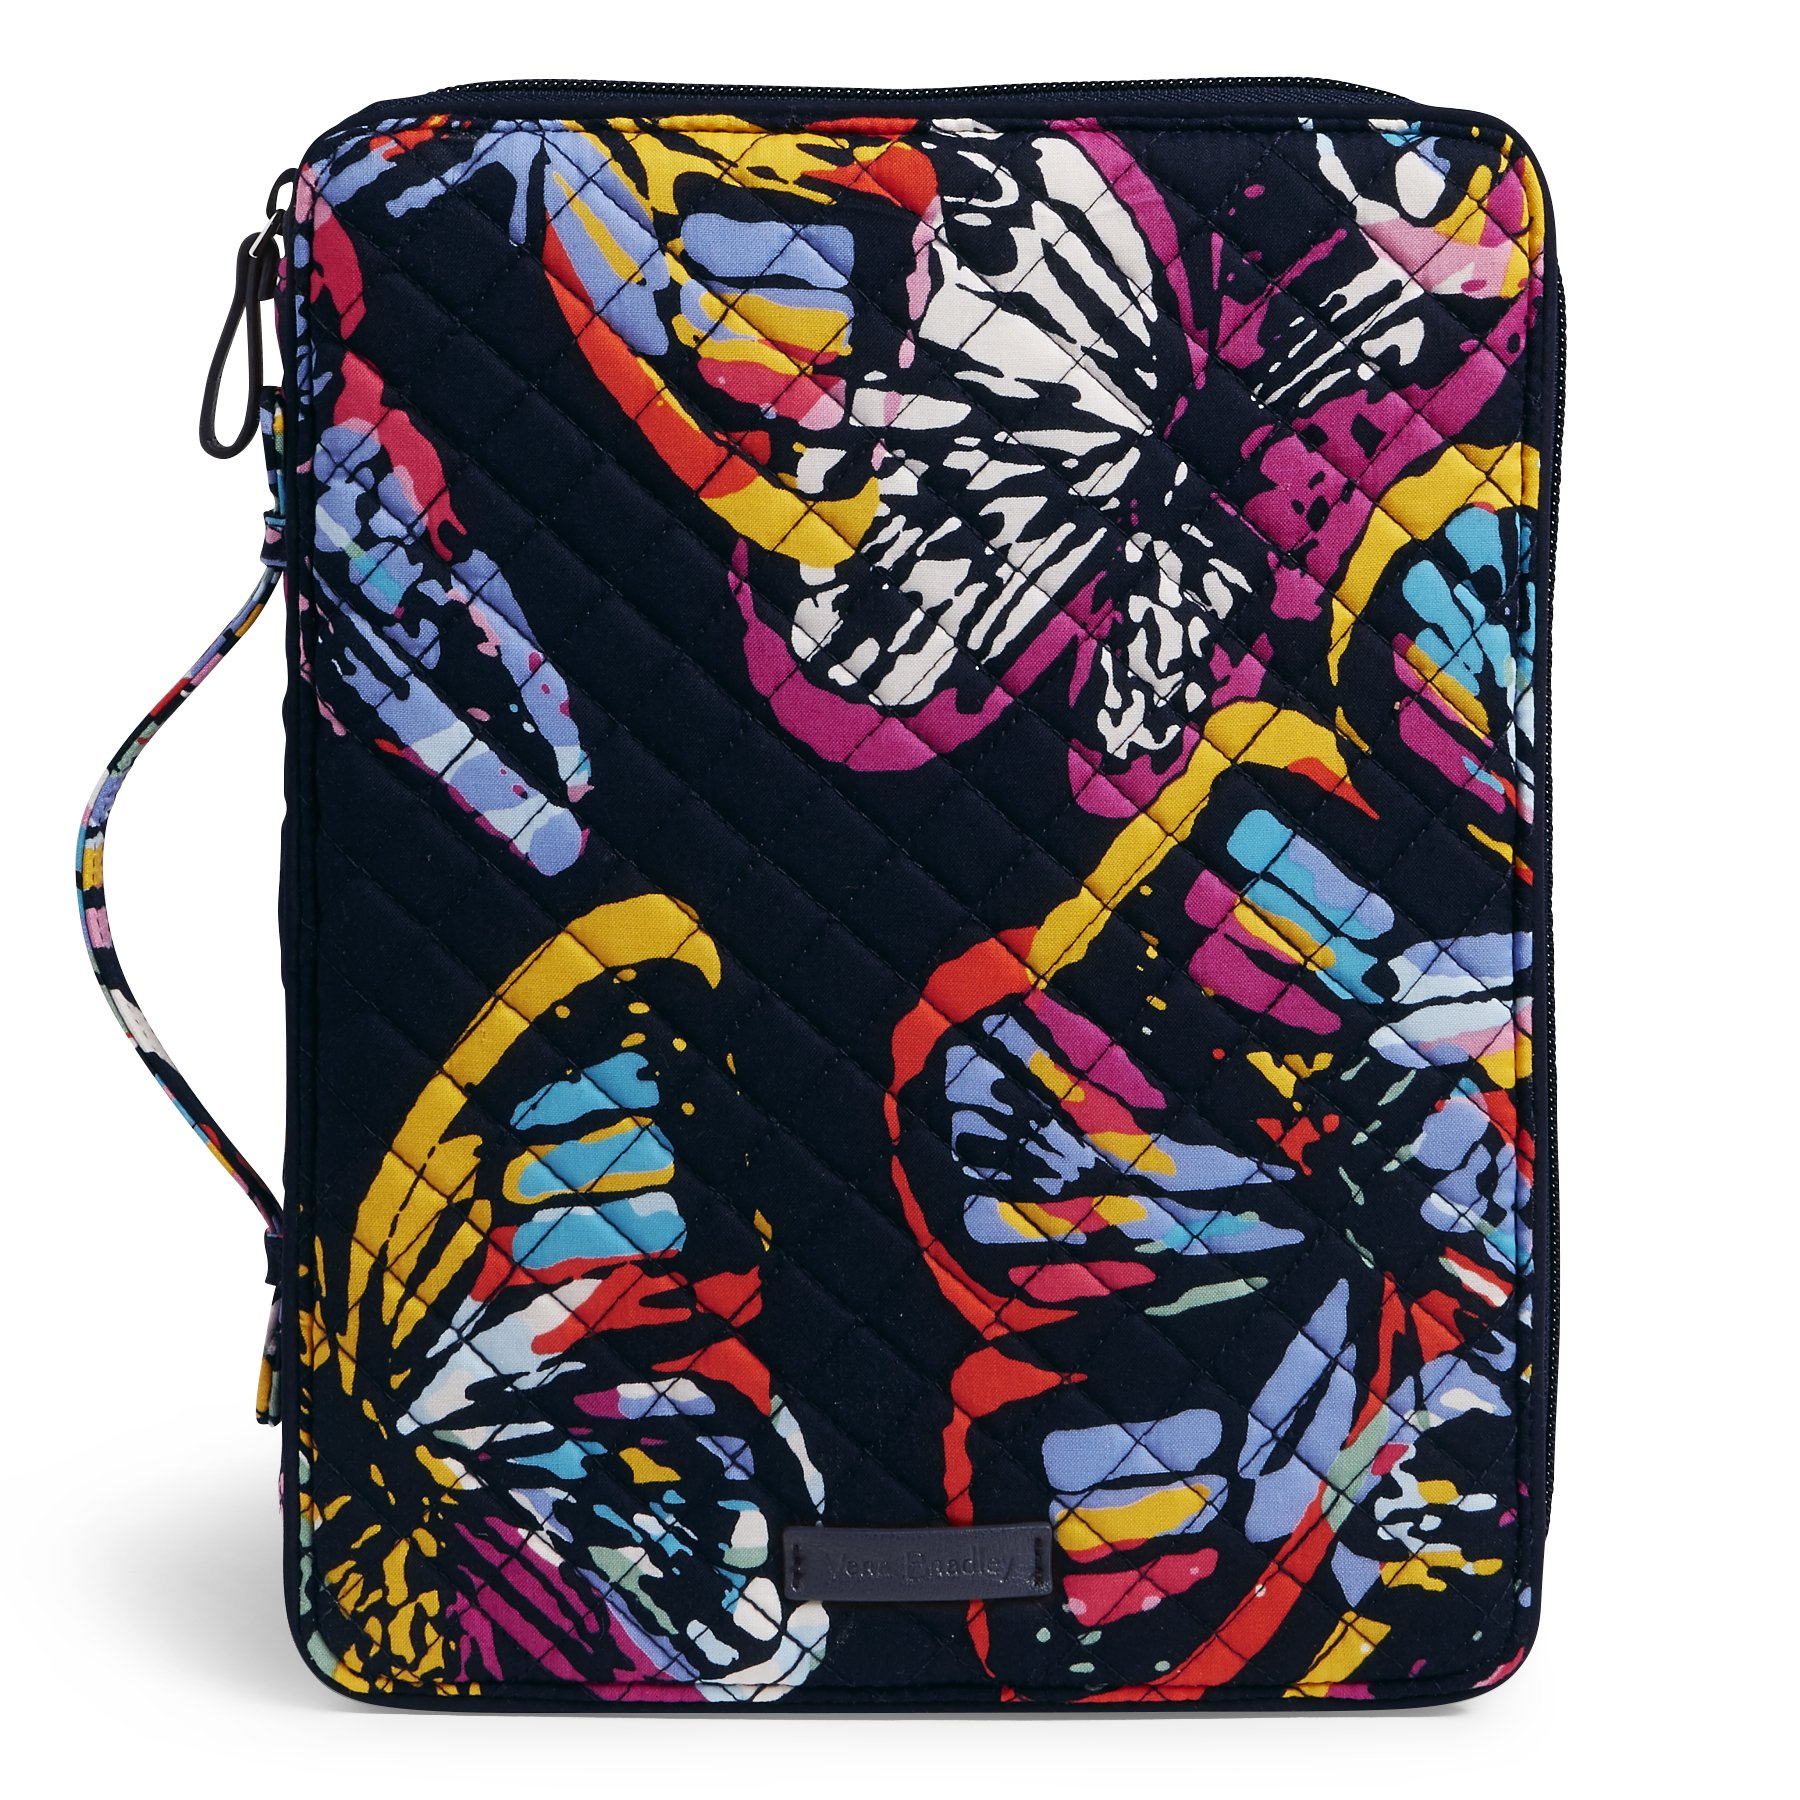 Vera Bradley Iconic Tablet Tamer Organizer, Signature Cotton, Butterfly Flutter